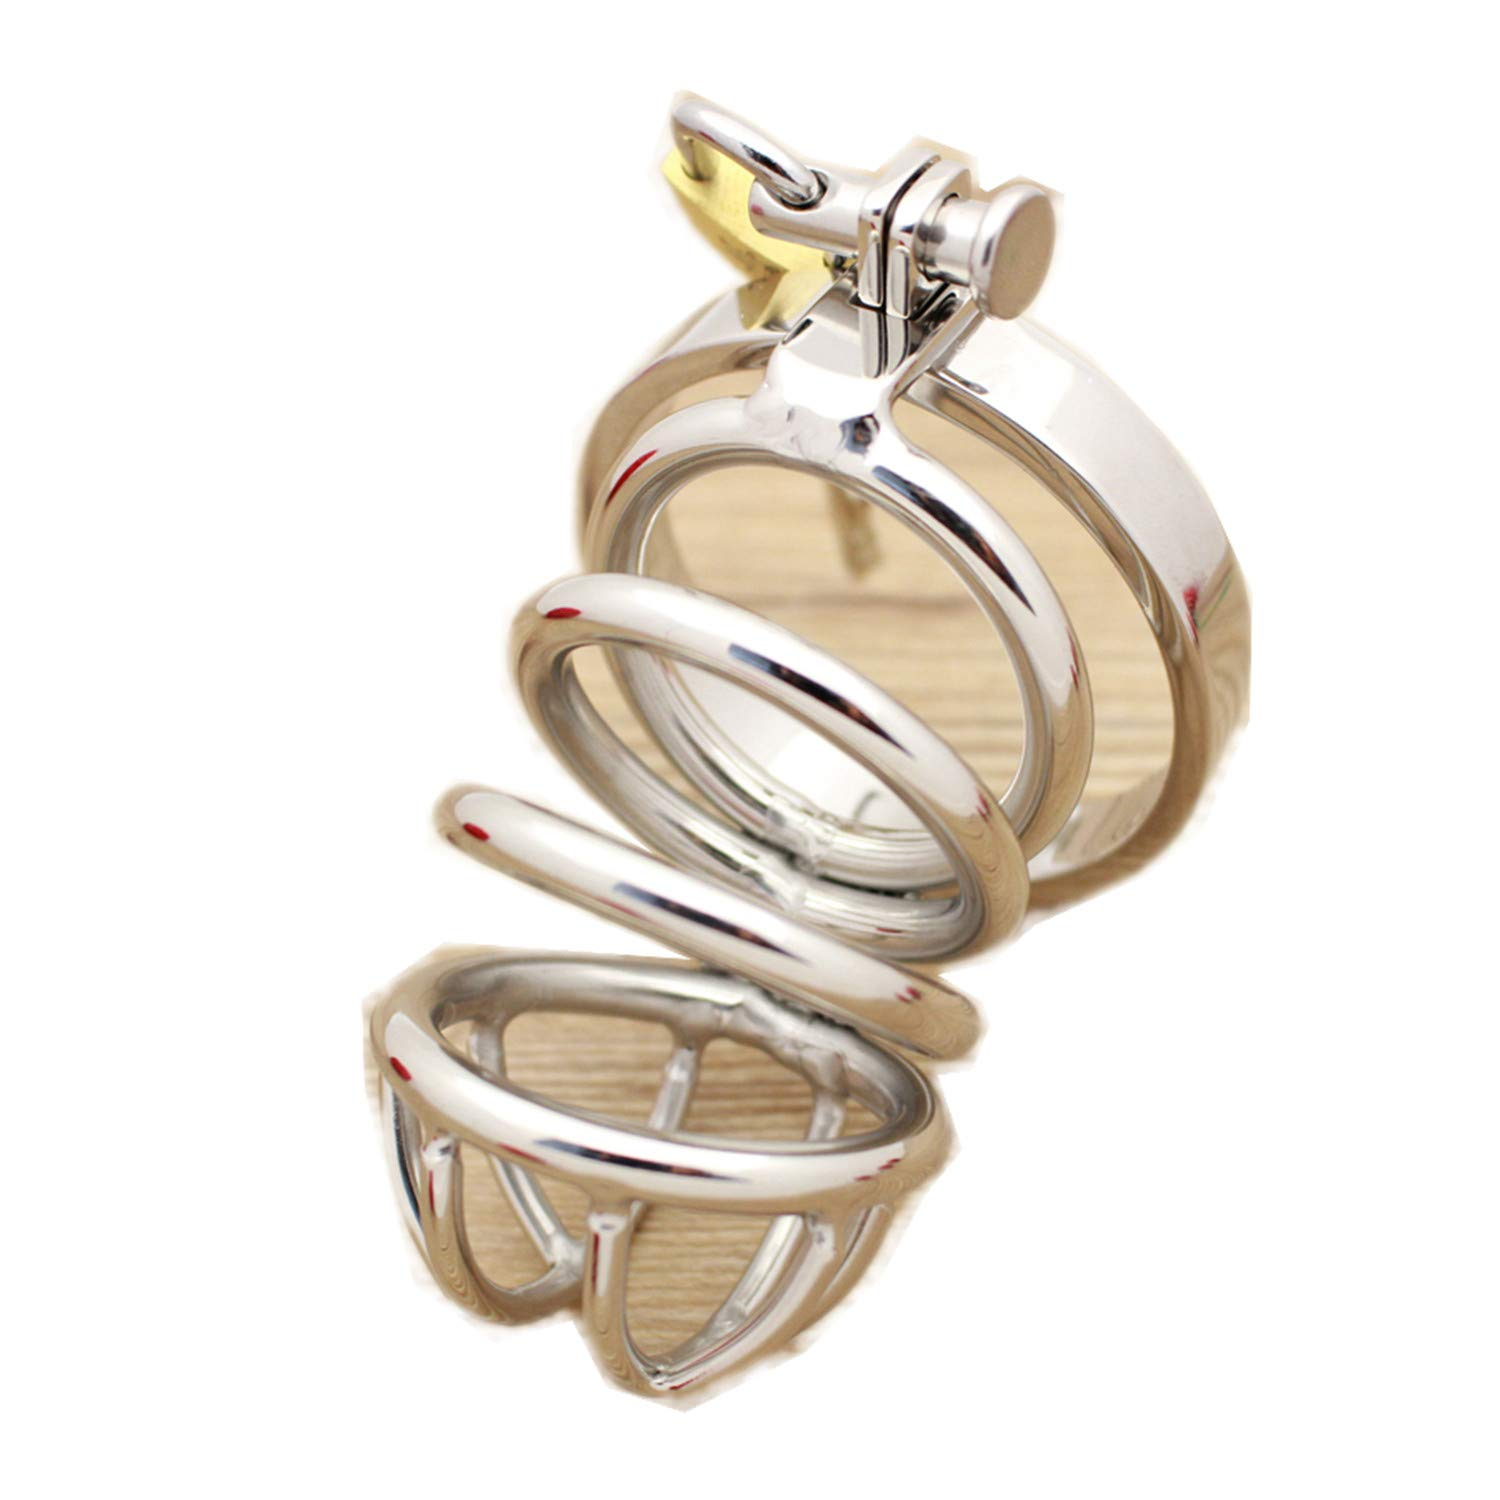 sensitives Male Chastity Device Stainless Steel Cock Short Cage Men's Virginity Lock, Small Chastity Belt Adult Game Sex Toys 38mm